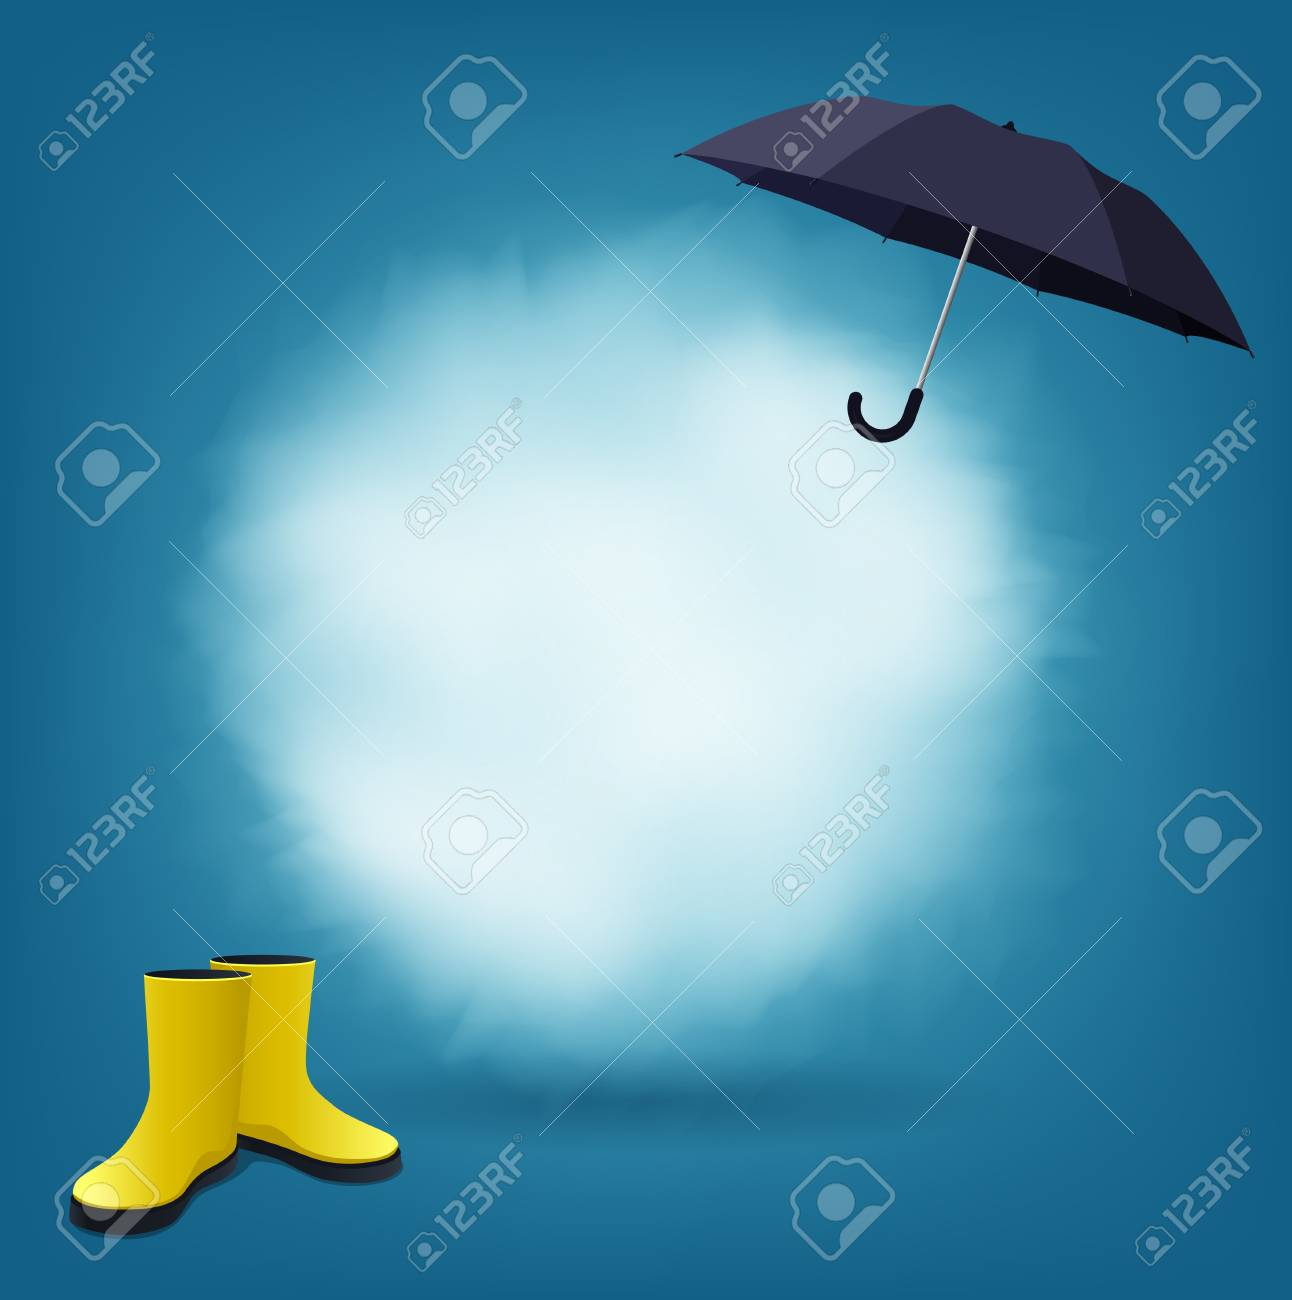 a63990199bf2 Speech bubble as cloud with black umbrella and yellow rain boots Stock  Vector - 79236056